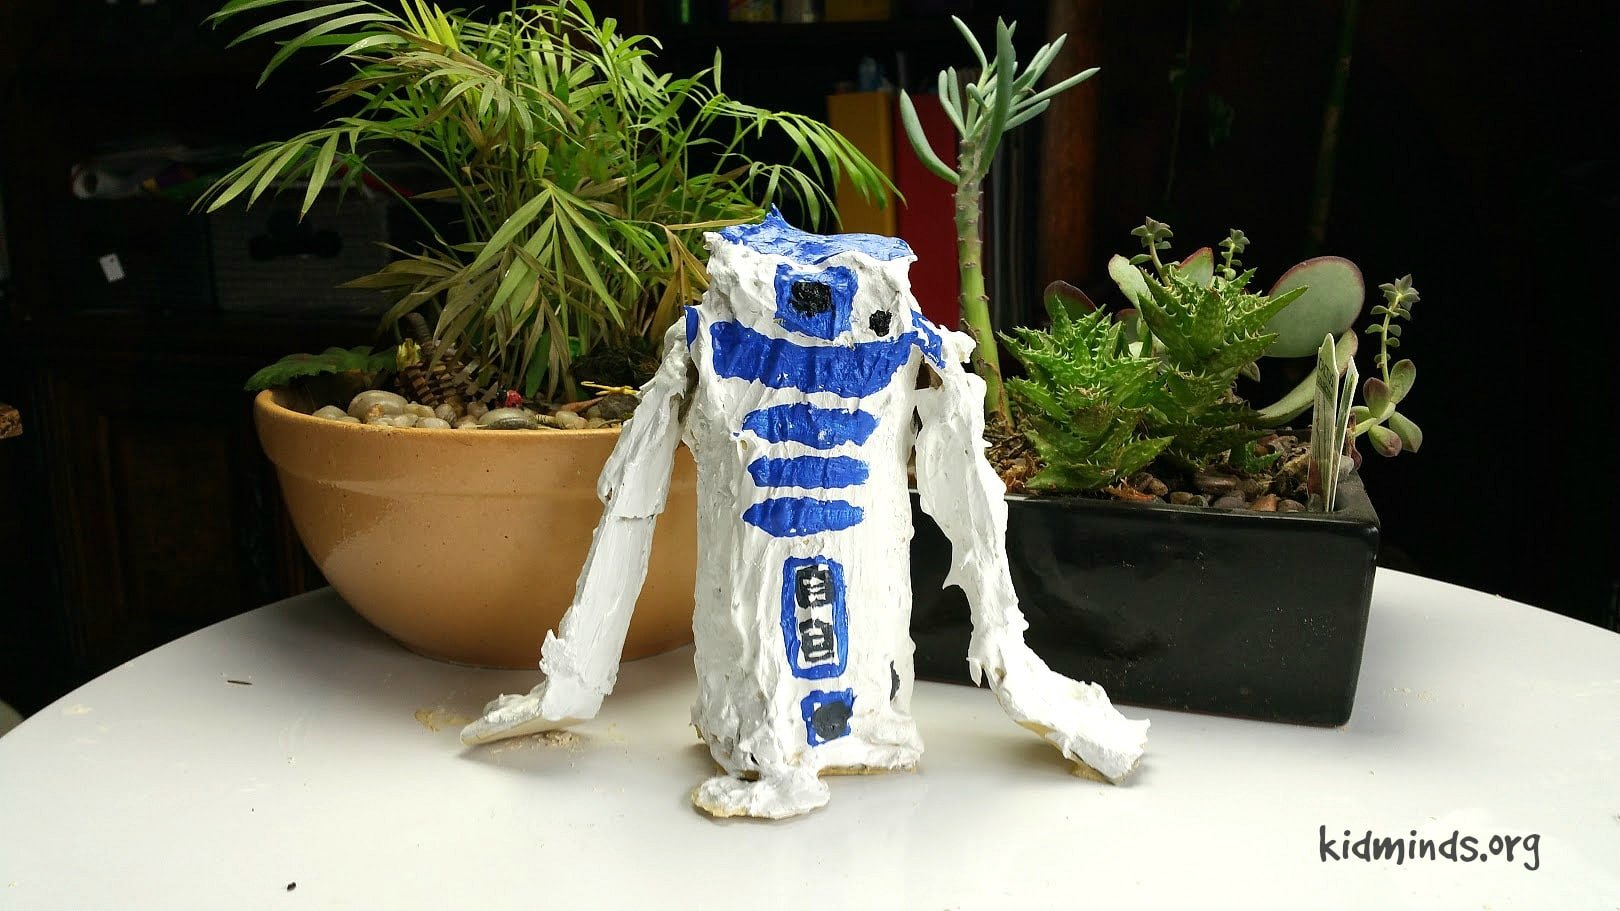 Homeschool Art Curriculum that nourishes creative spirit, teaches processes involved in working with specific materials and explains elements of sculpture. #StarWars